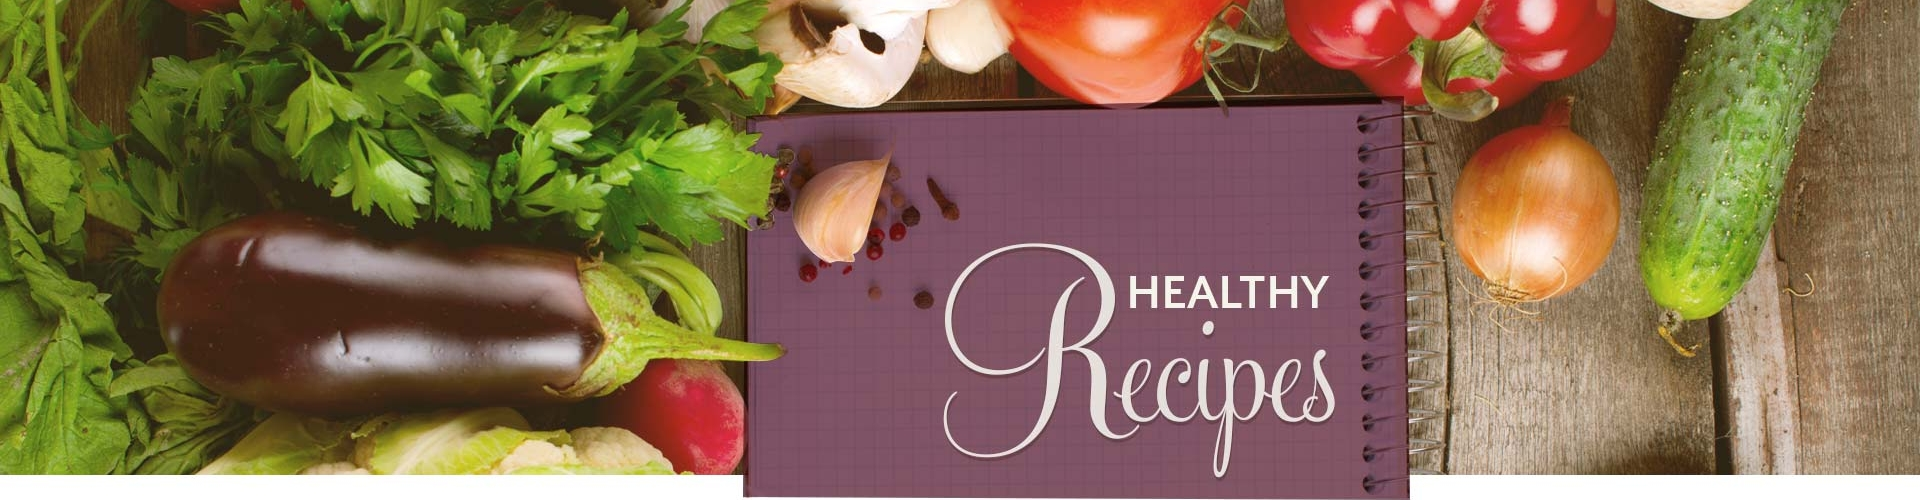 Naturopathic Recipes Newmarket